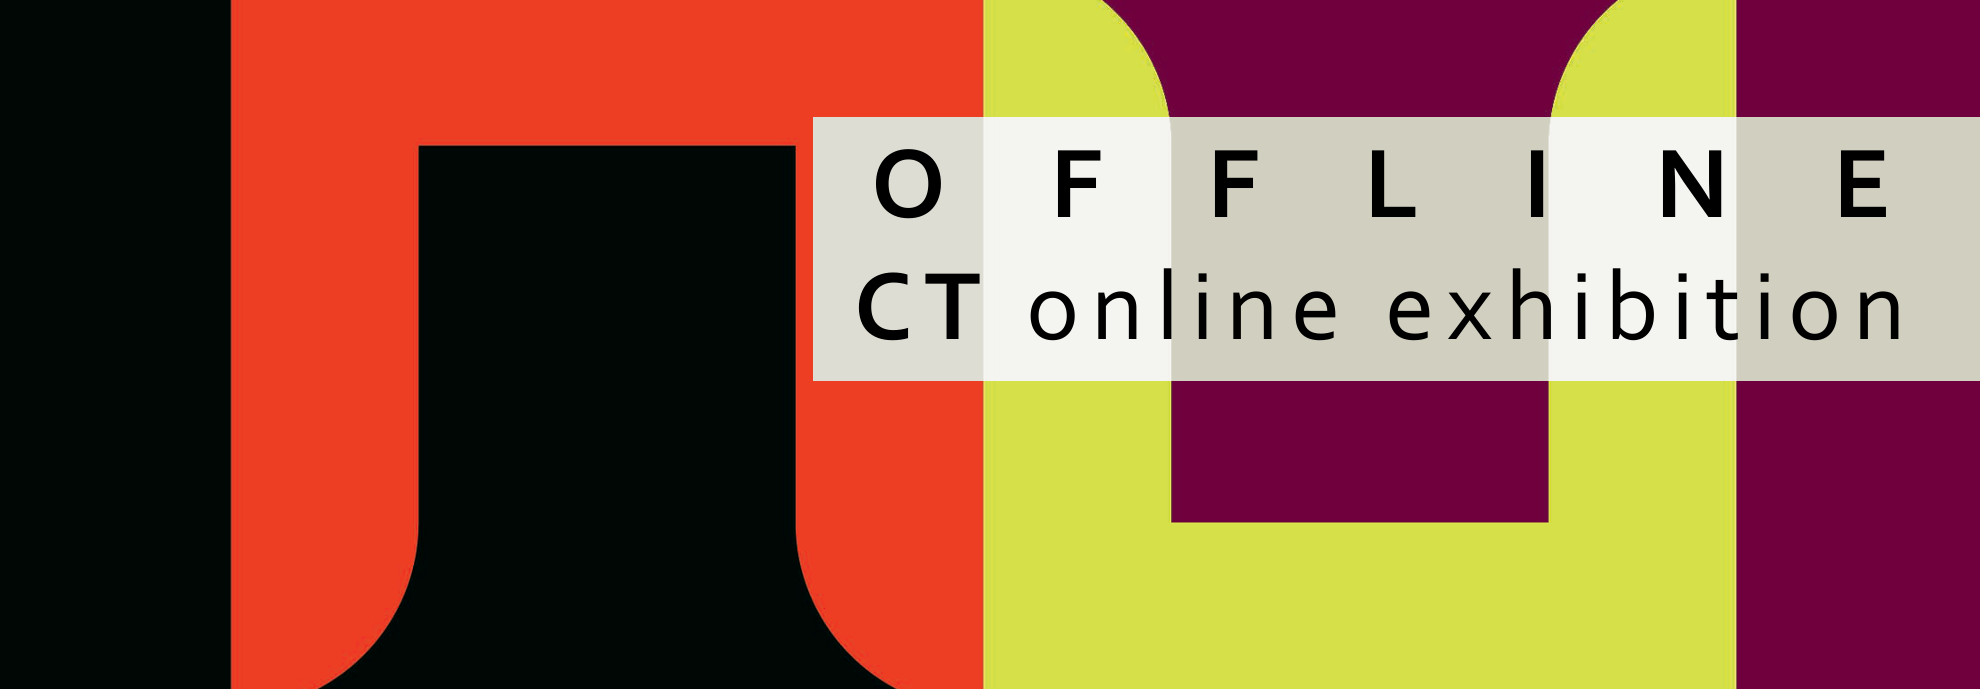 OFFLINE CT Online EXHIBITION on ARTsuggest.com